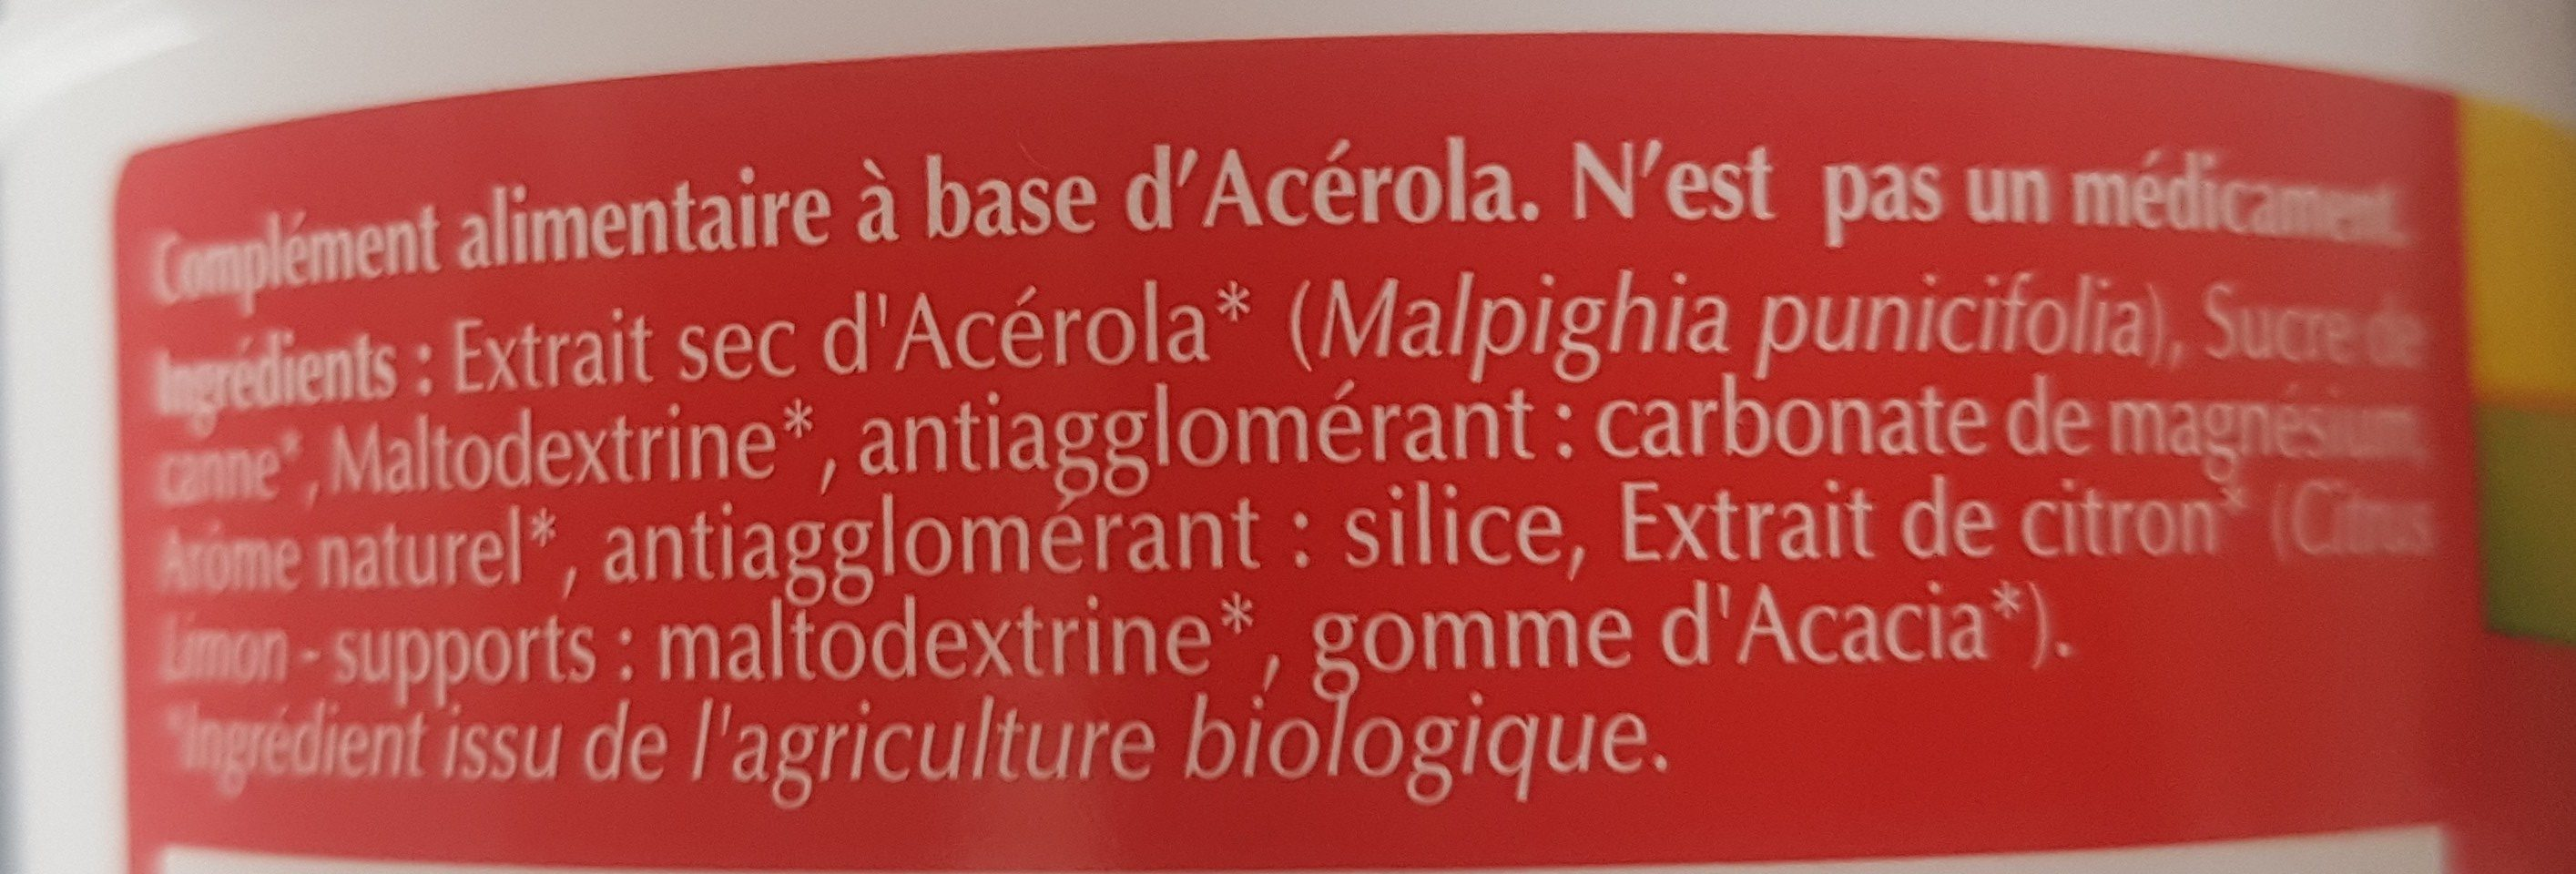 Acérola 1000 Bio Goût Fruits Rouges - Ingredients